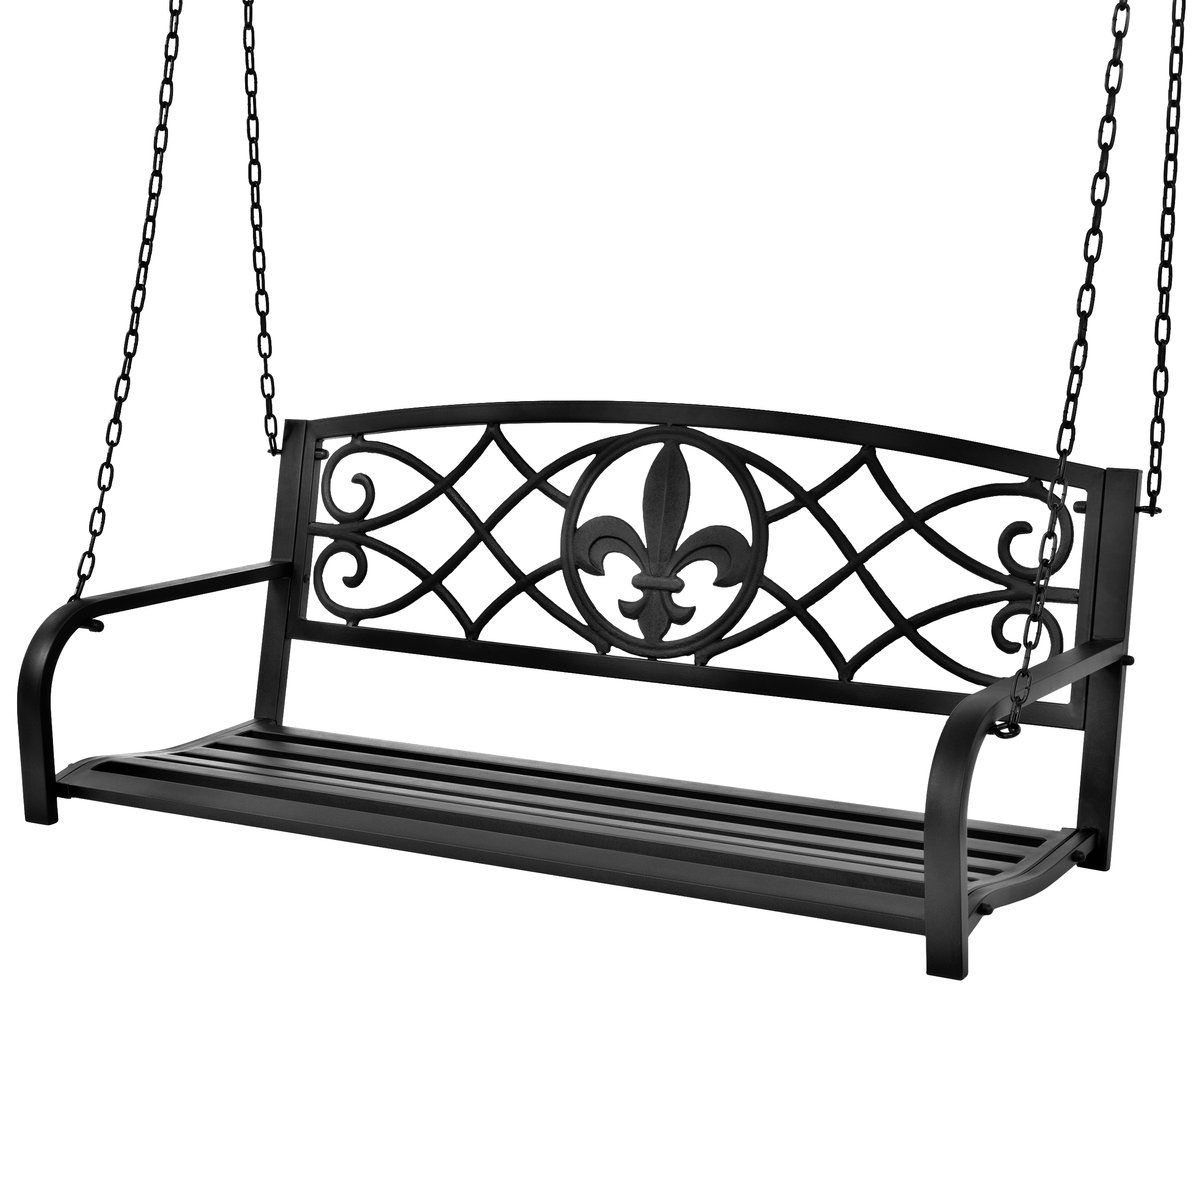 2020 Outdoor Metal Hanging 2 Person Swing Bench W/ Fleur De Lis With Vineyard 2 Person Black Recycled Plastic Outdoor Swings (View 2 of 30)